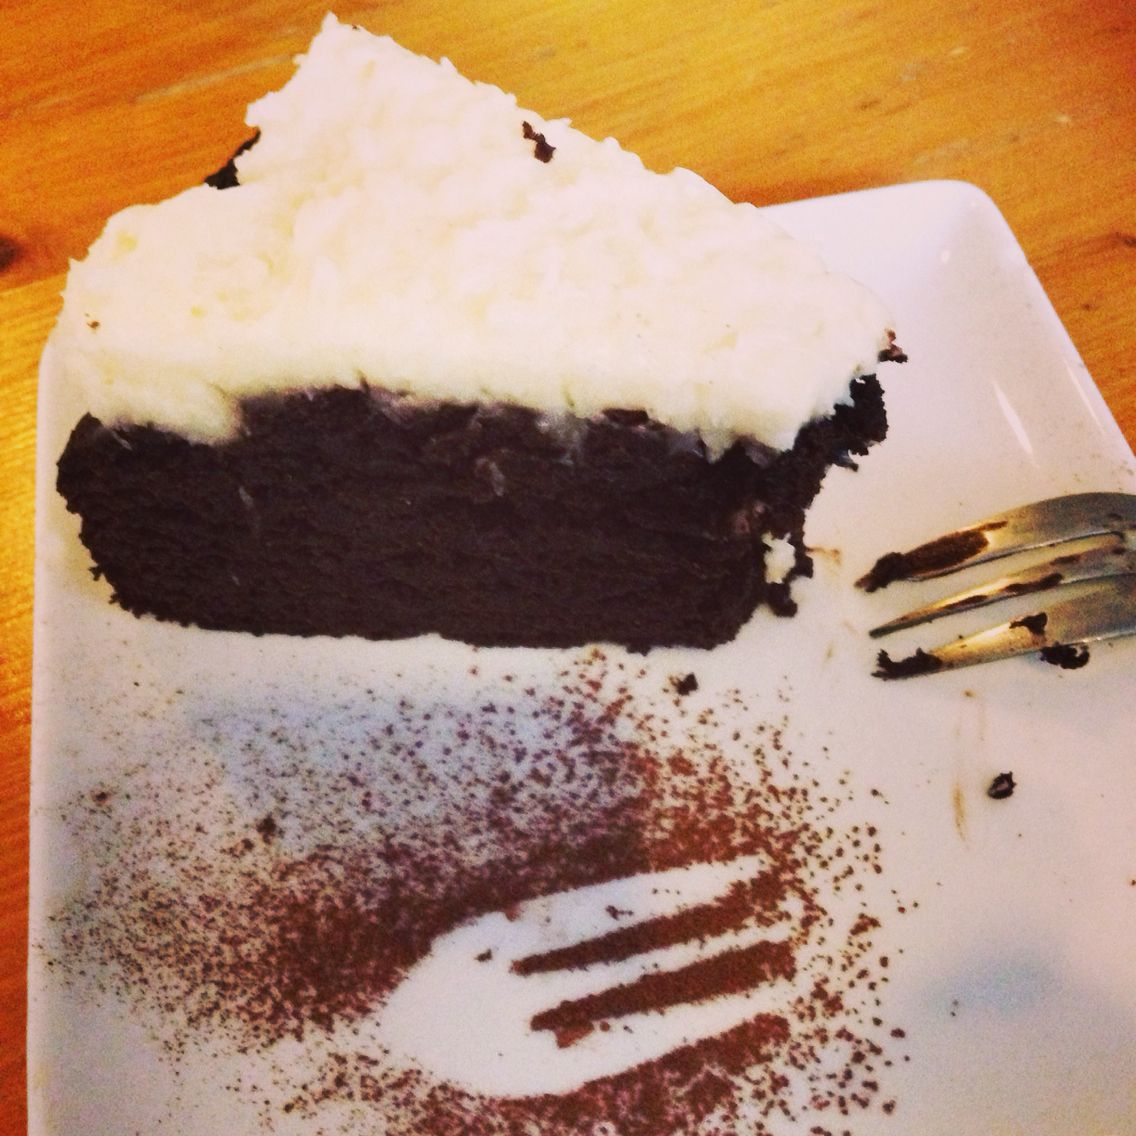 A piece of chocolate with cream cheese coconut topping heaven at KEEK.